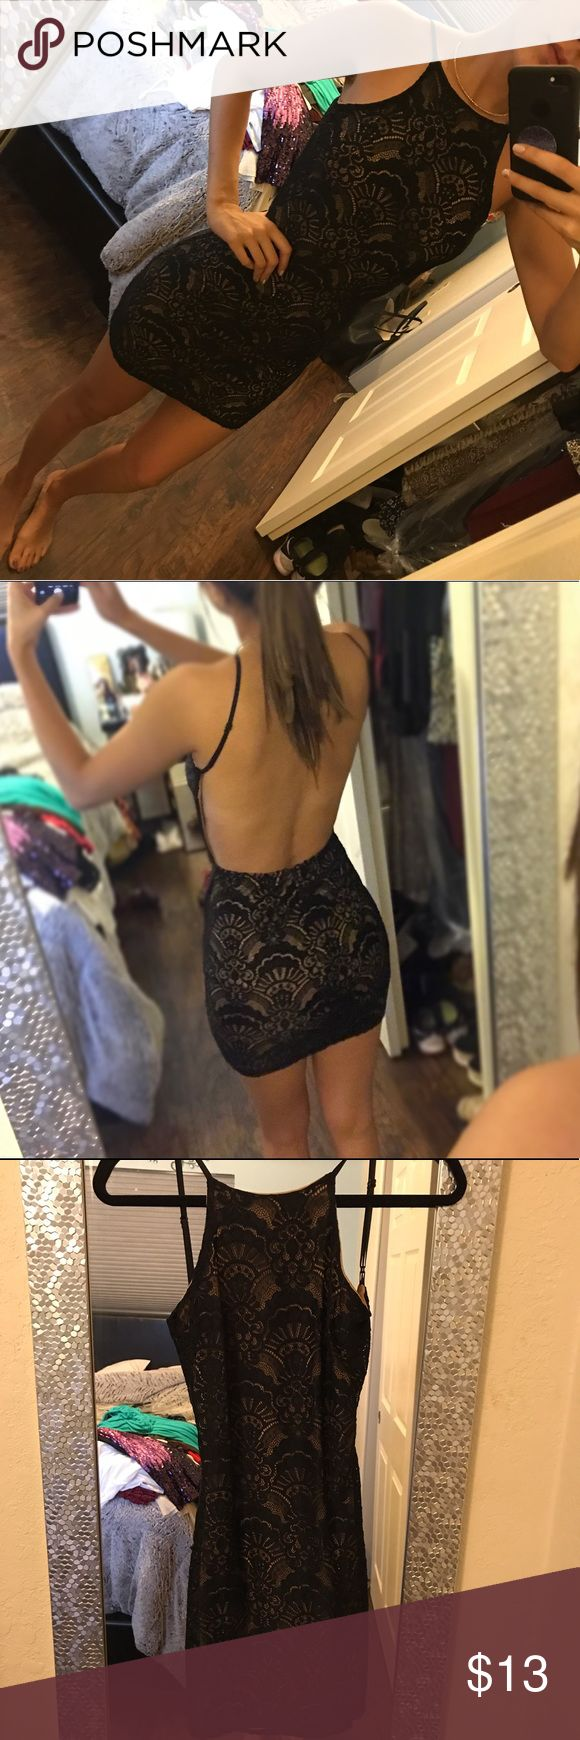 Bodycon crochet backless dress Size S  going out backless dress ANGL Dresses Mini